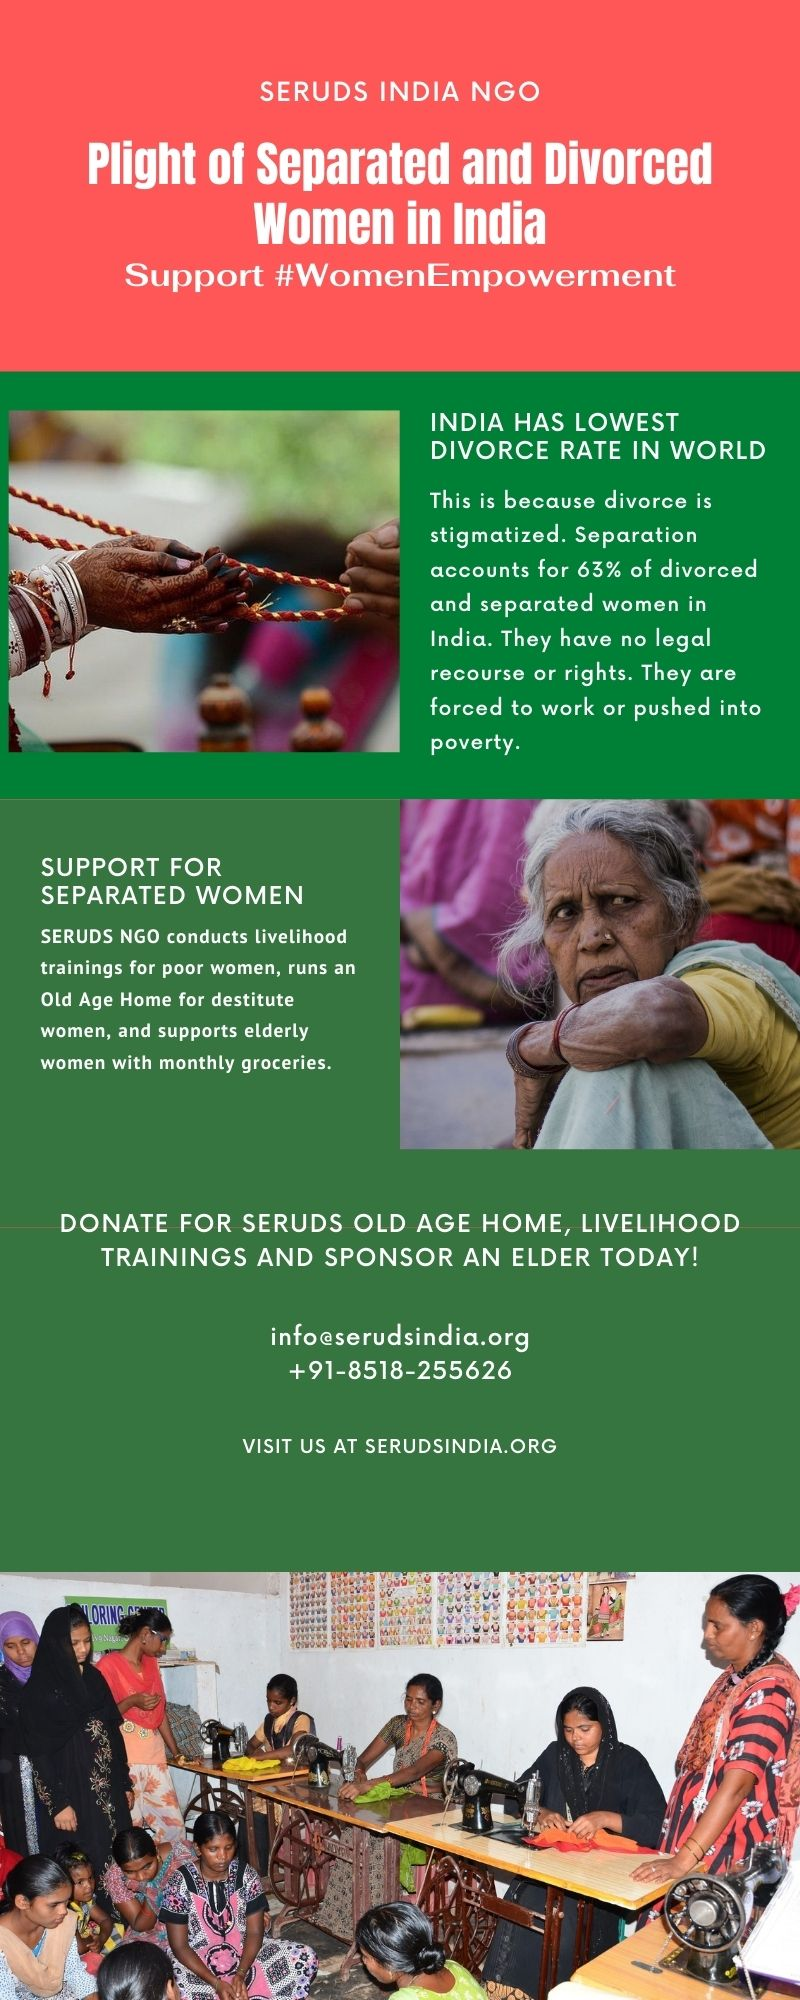 Plight-of-Separated-and-Divorced-Women-in-India